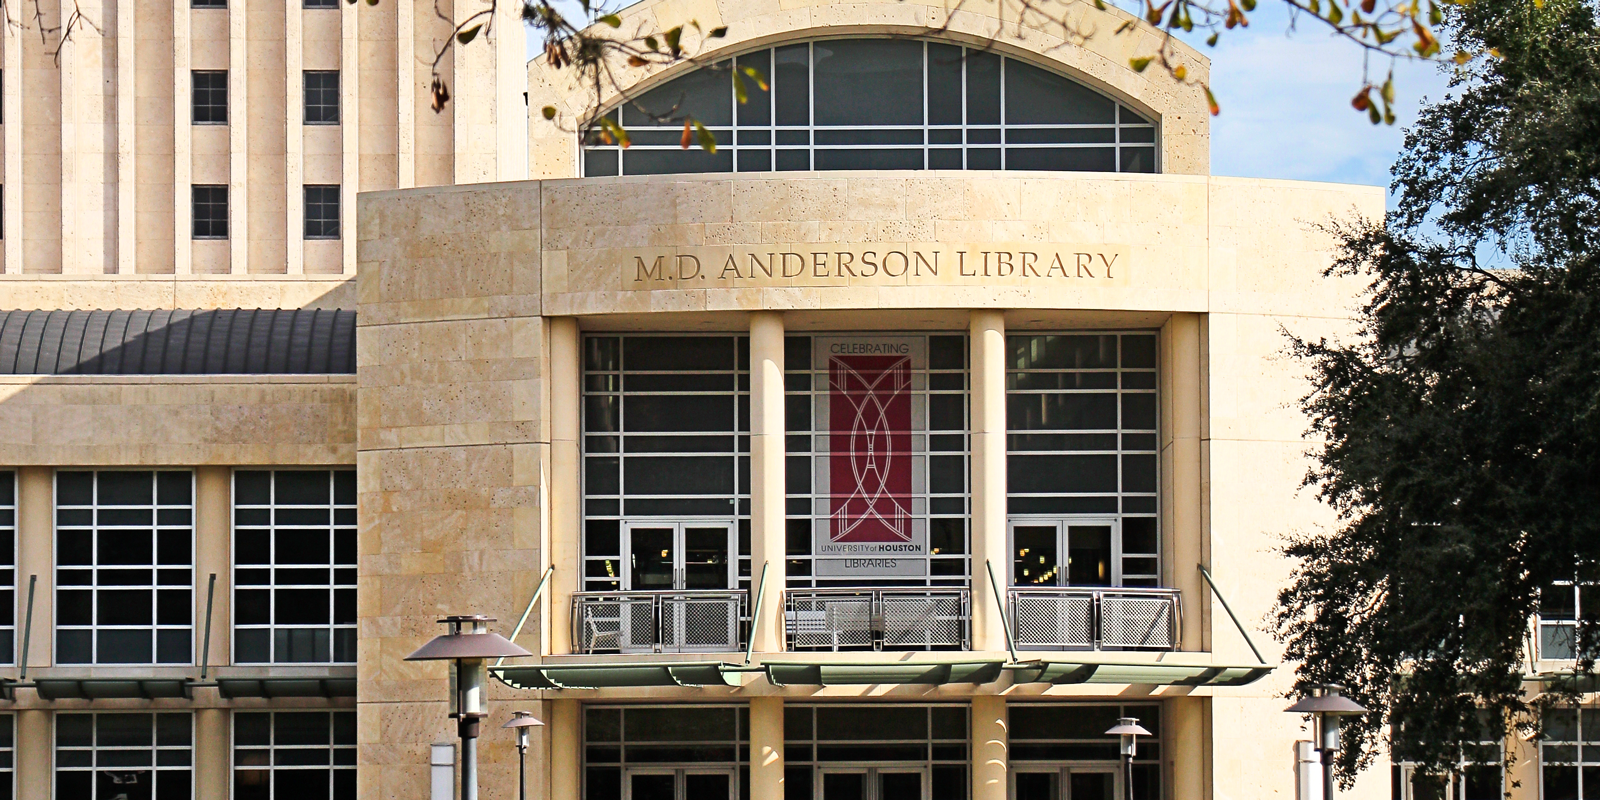 outside photograph of the front and entry of MD Anderson Library